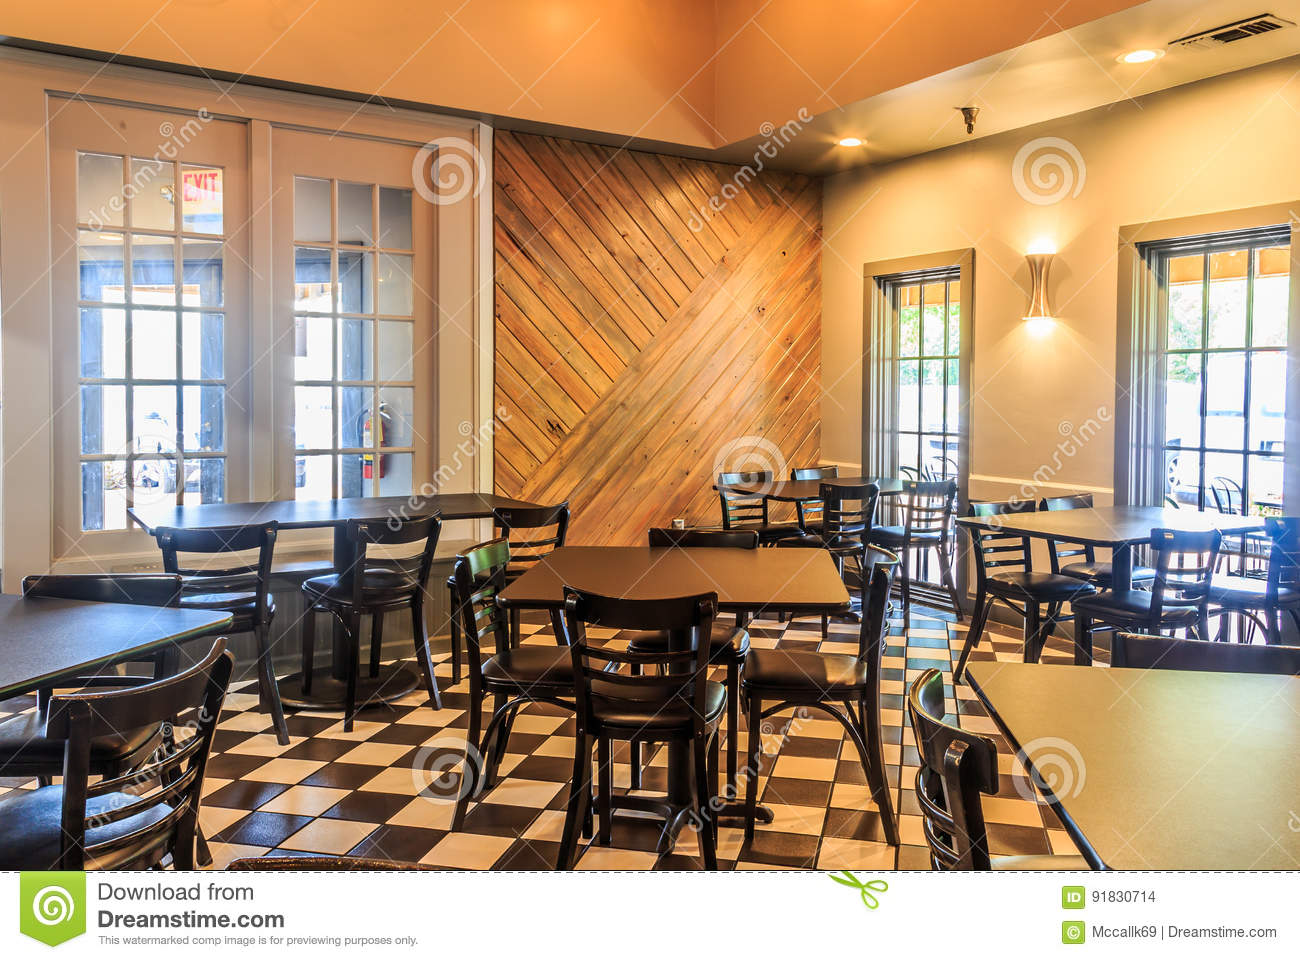 Restaurant Interior Under Warm Soft Light Stock Photo   Image of     Restaurant interior under warm soft light with a mosaic tile floor in  Montgomery Alabama